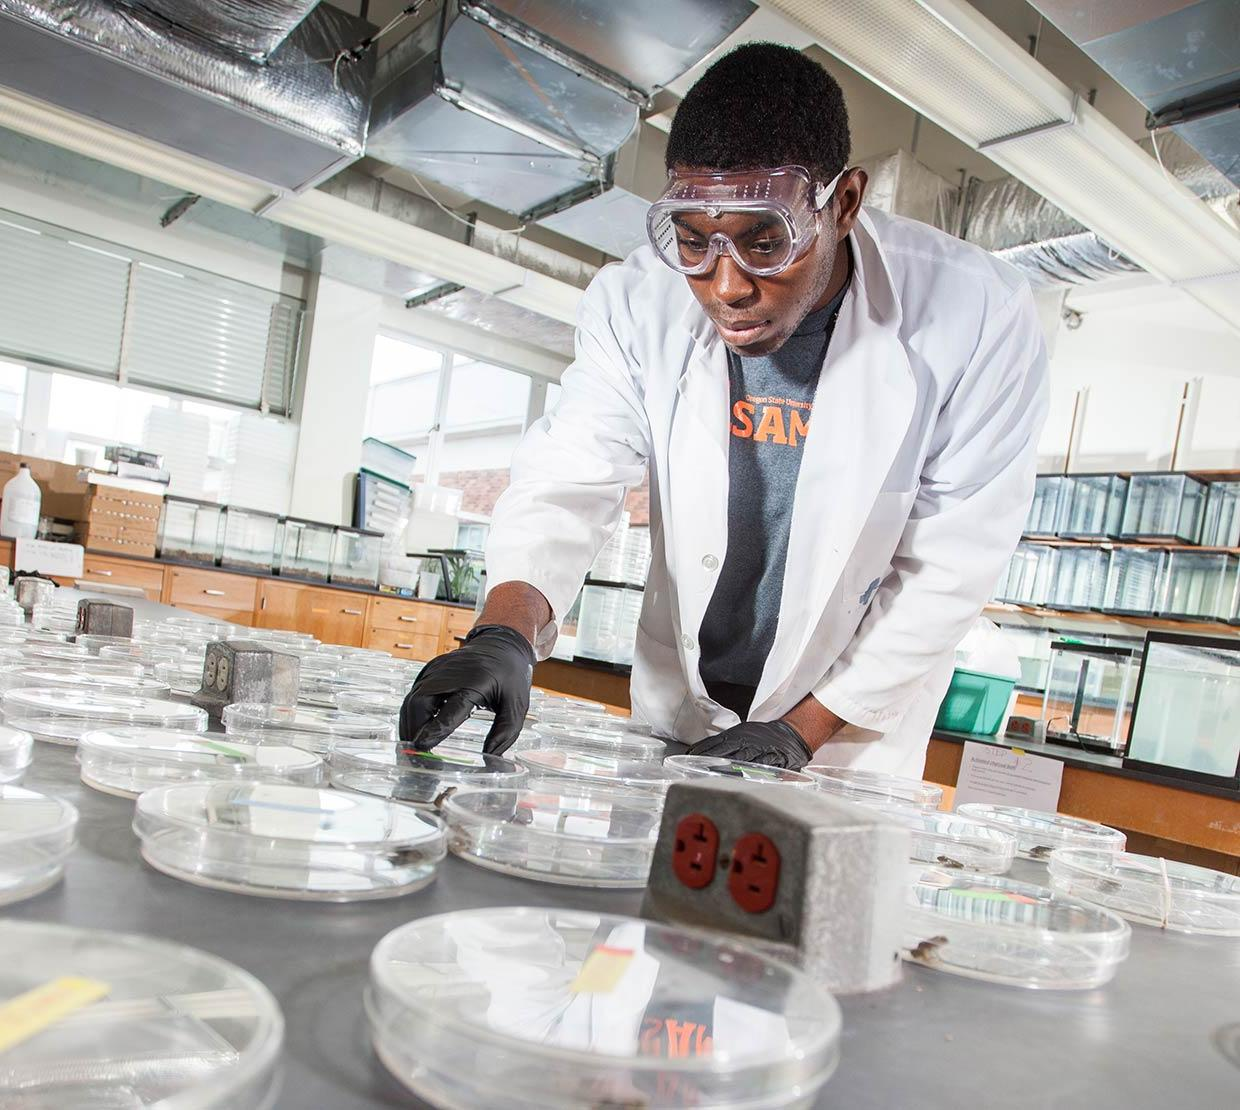 Justin Conner grabbing petri dishes in lab